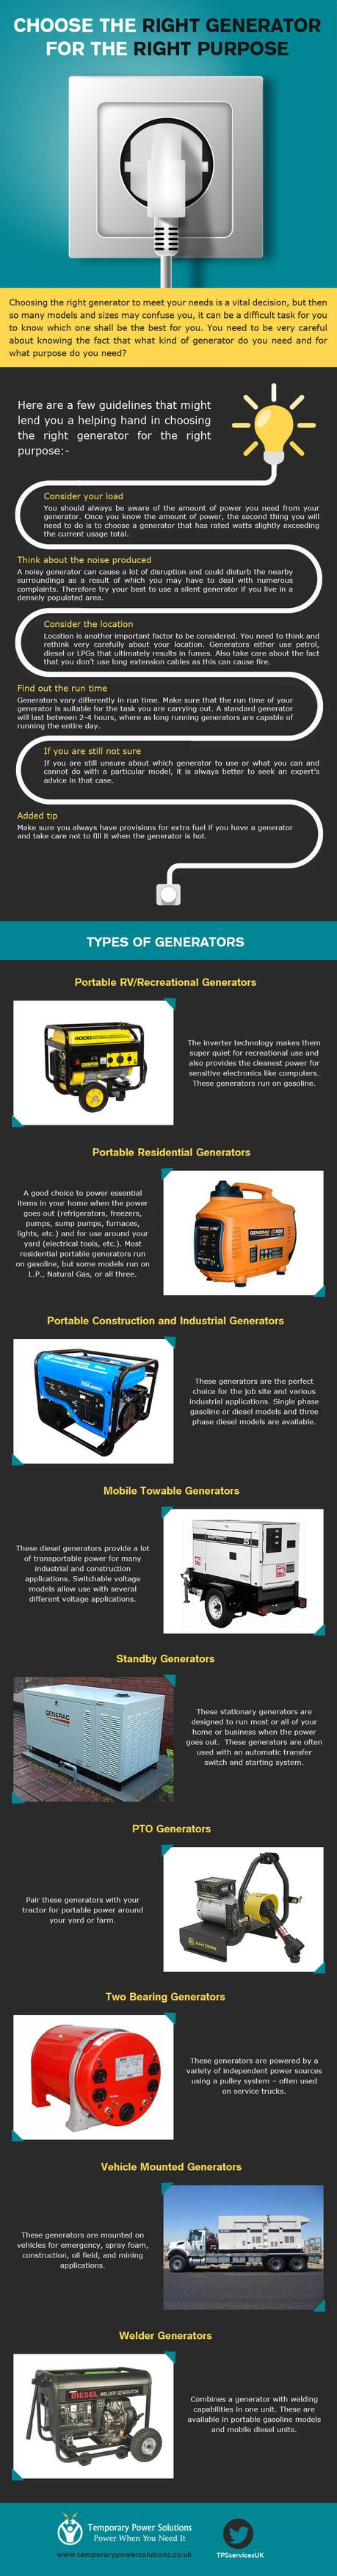 Choose the Right Generator for the Right Purpose [Infographic]